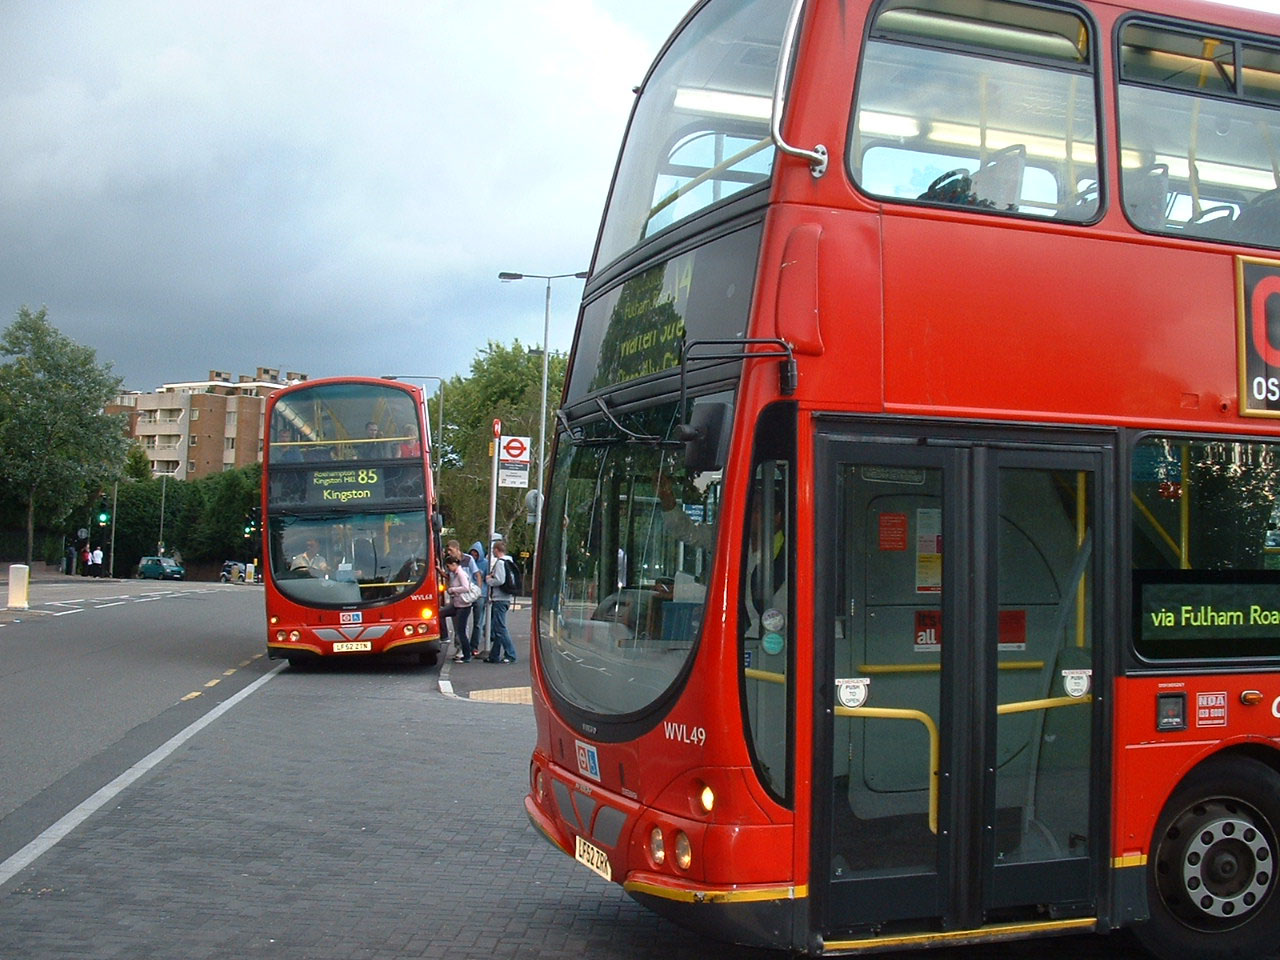 London general showbus london photo gallery for 85 bus timetable